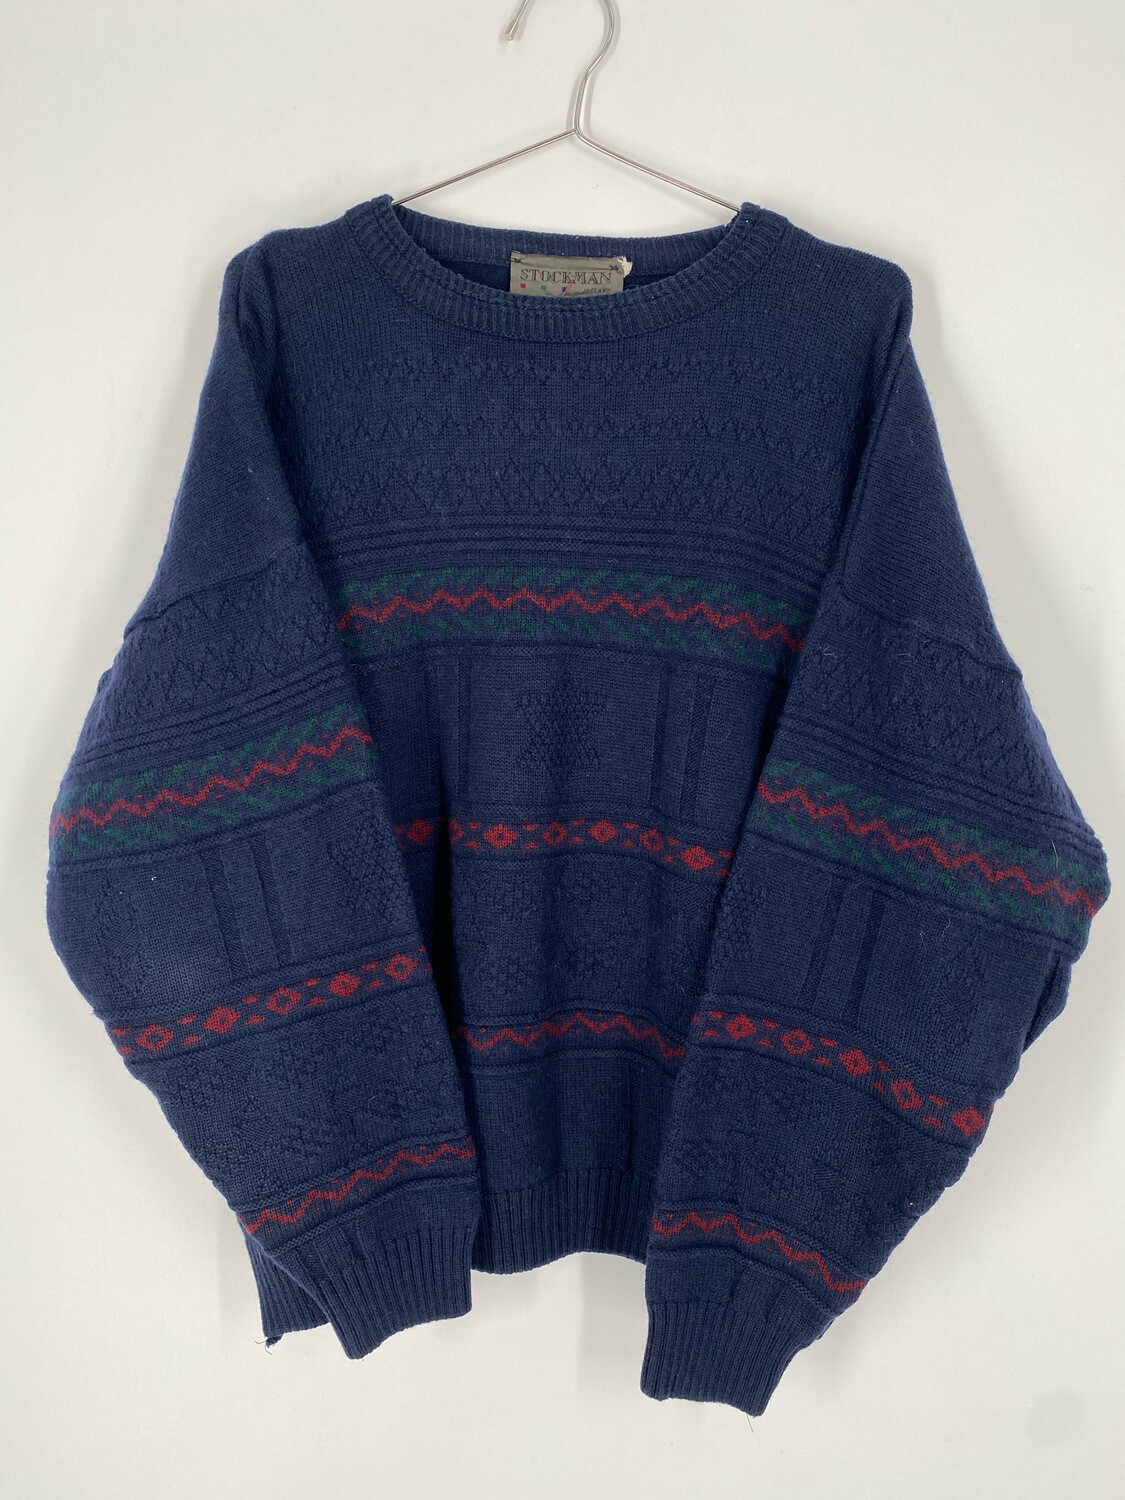 Stockman Ireland Printed Crewneck Sweater Size M